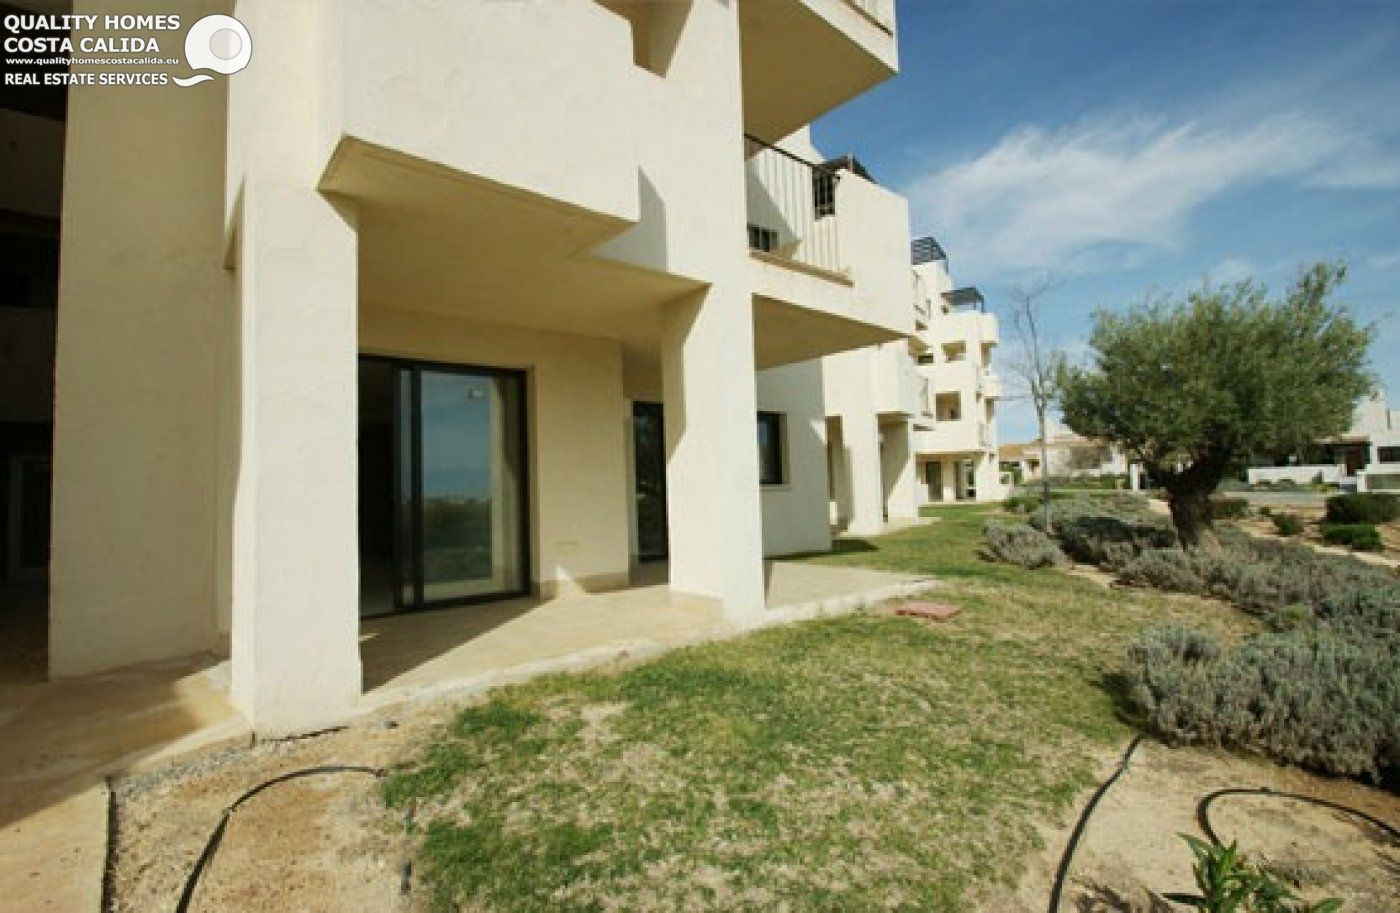 Gallery Image 3 of Maybe the best investment in the Murcia Region